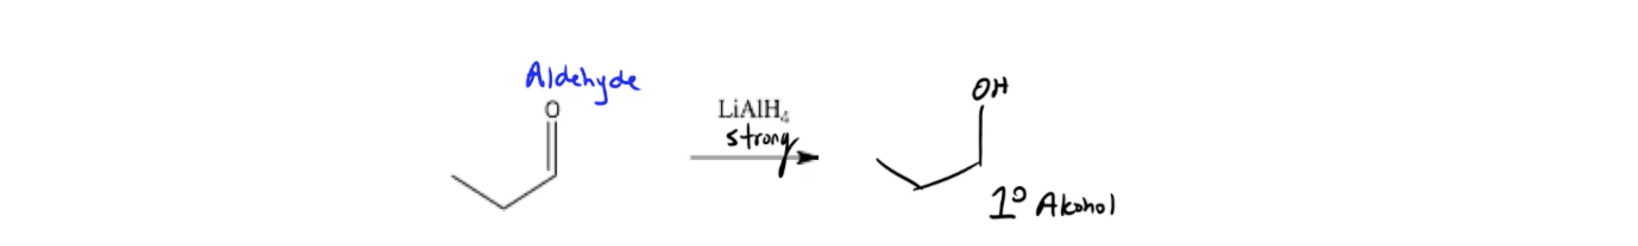 Aldehyde Reduction